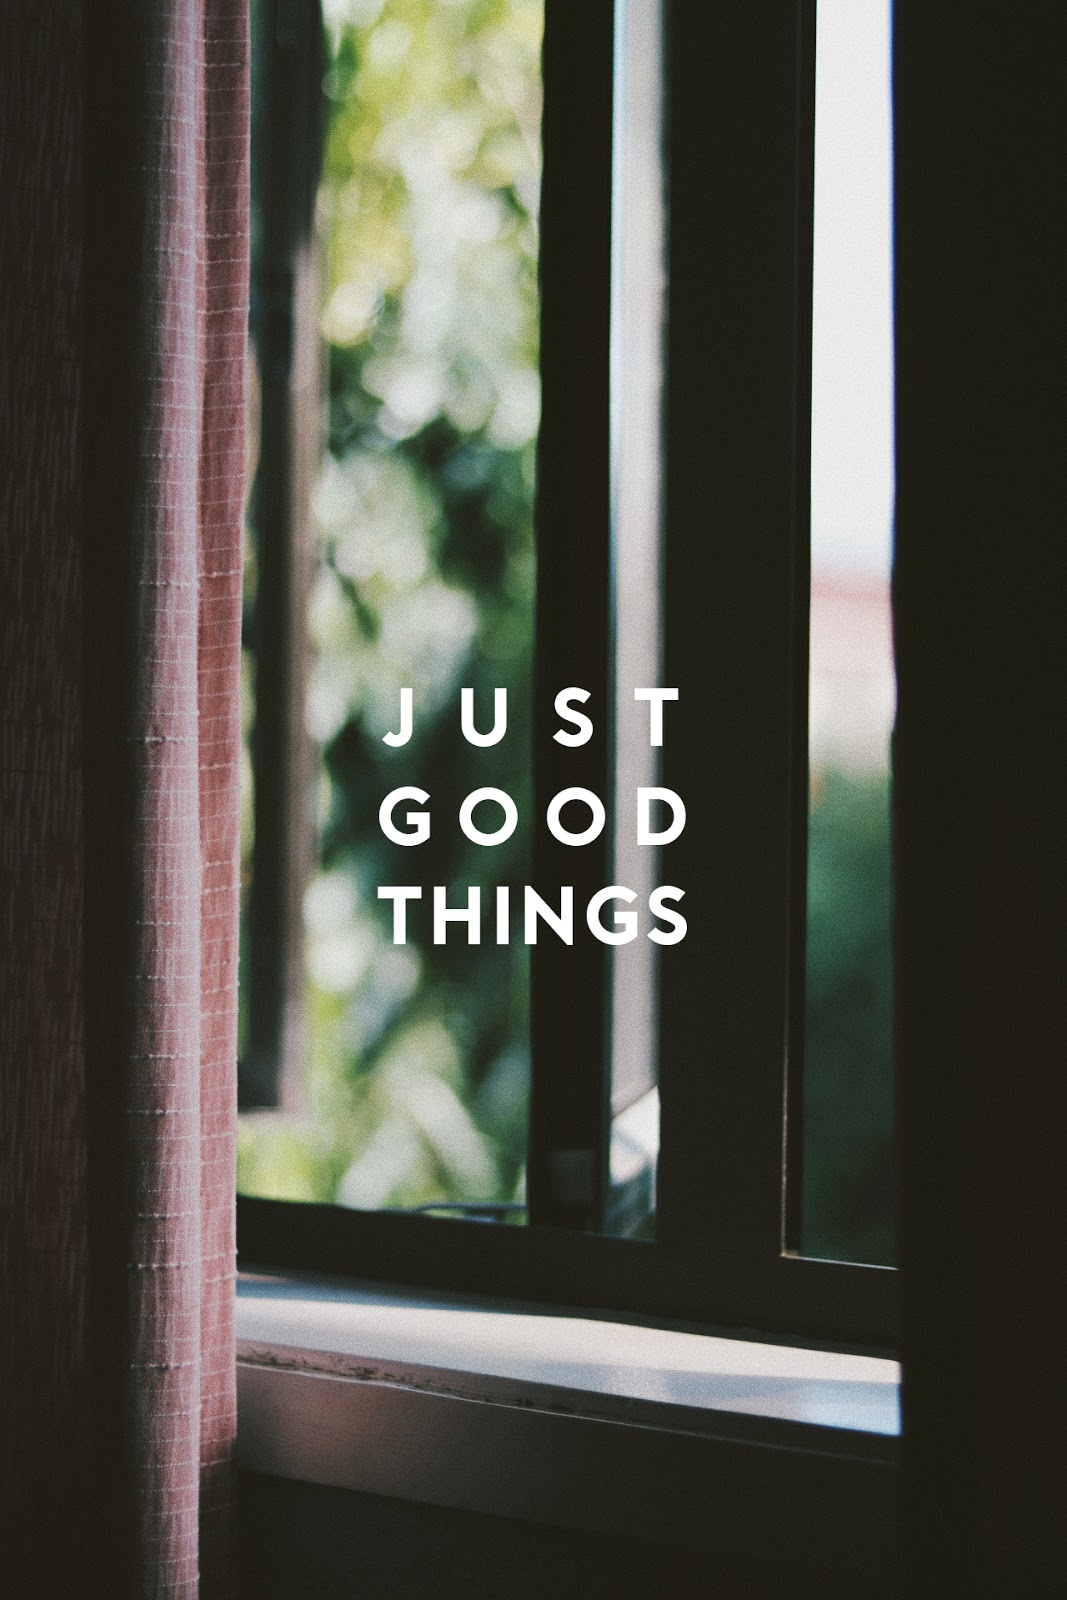 JUST GOOD THINGS